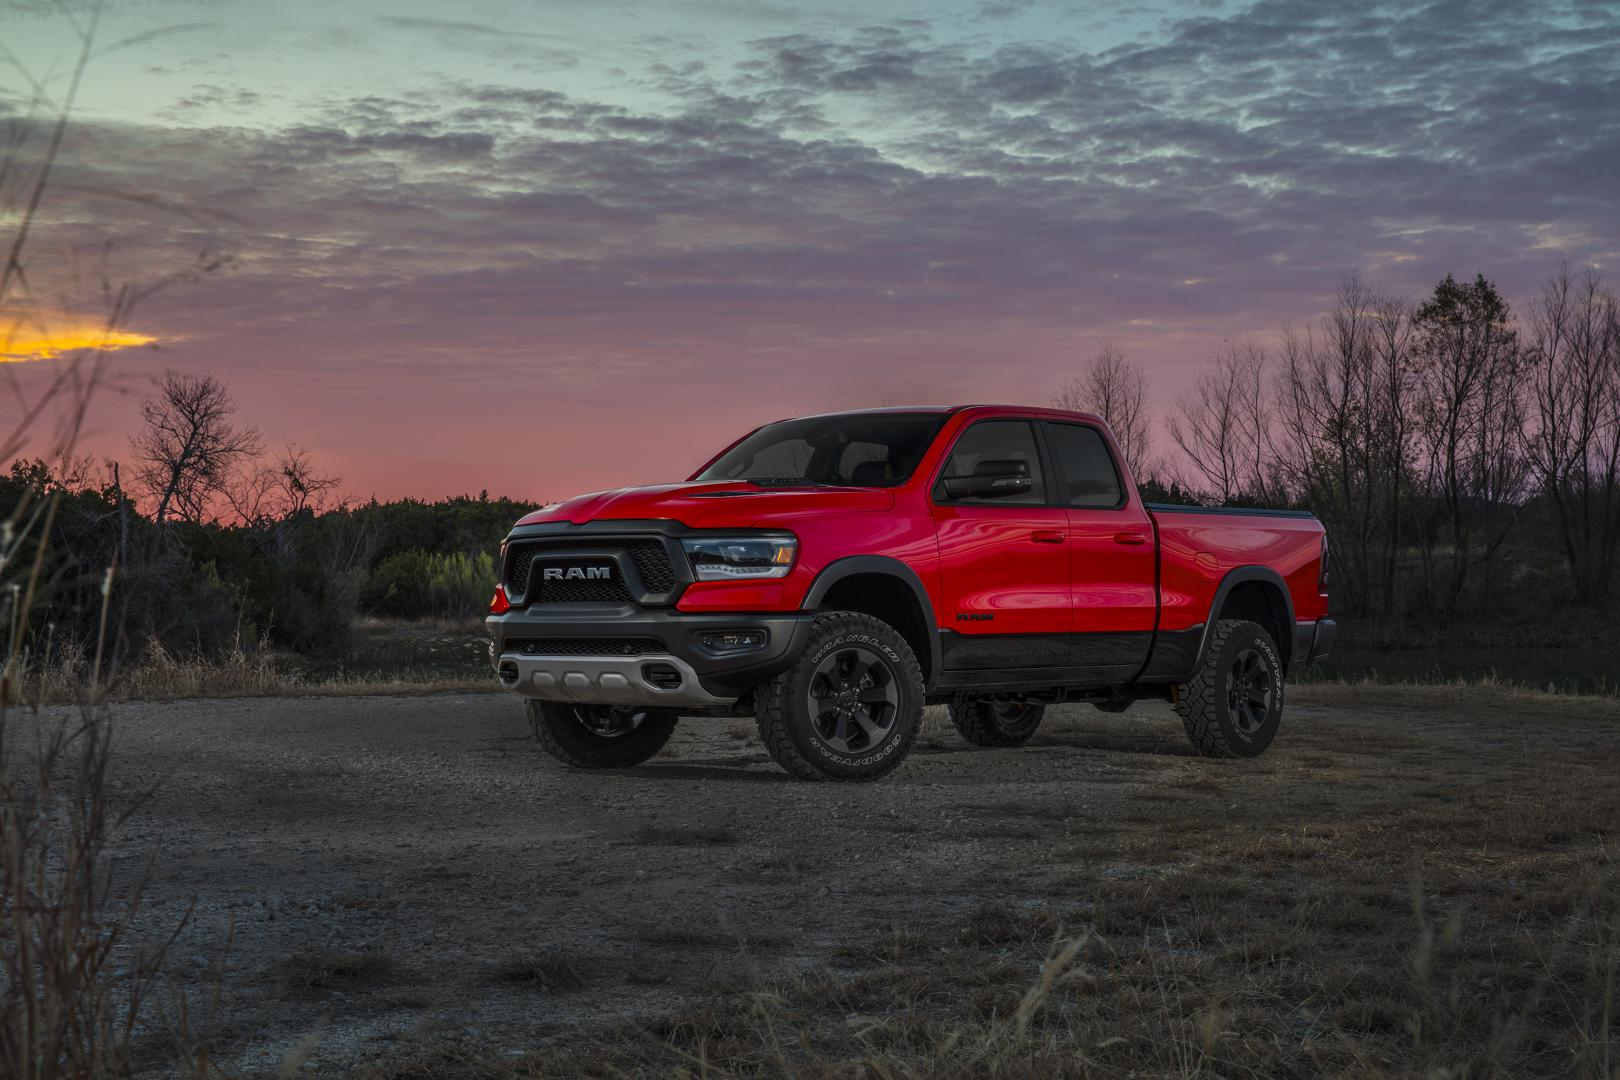 De Ram 1500 Hellcat pick-up komt